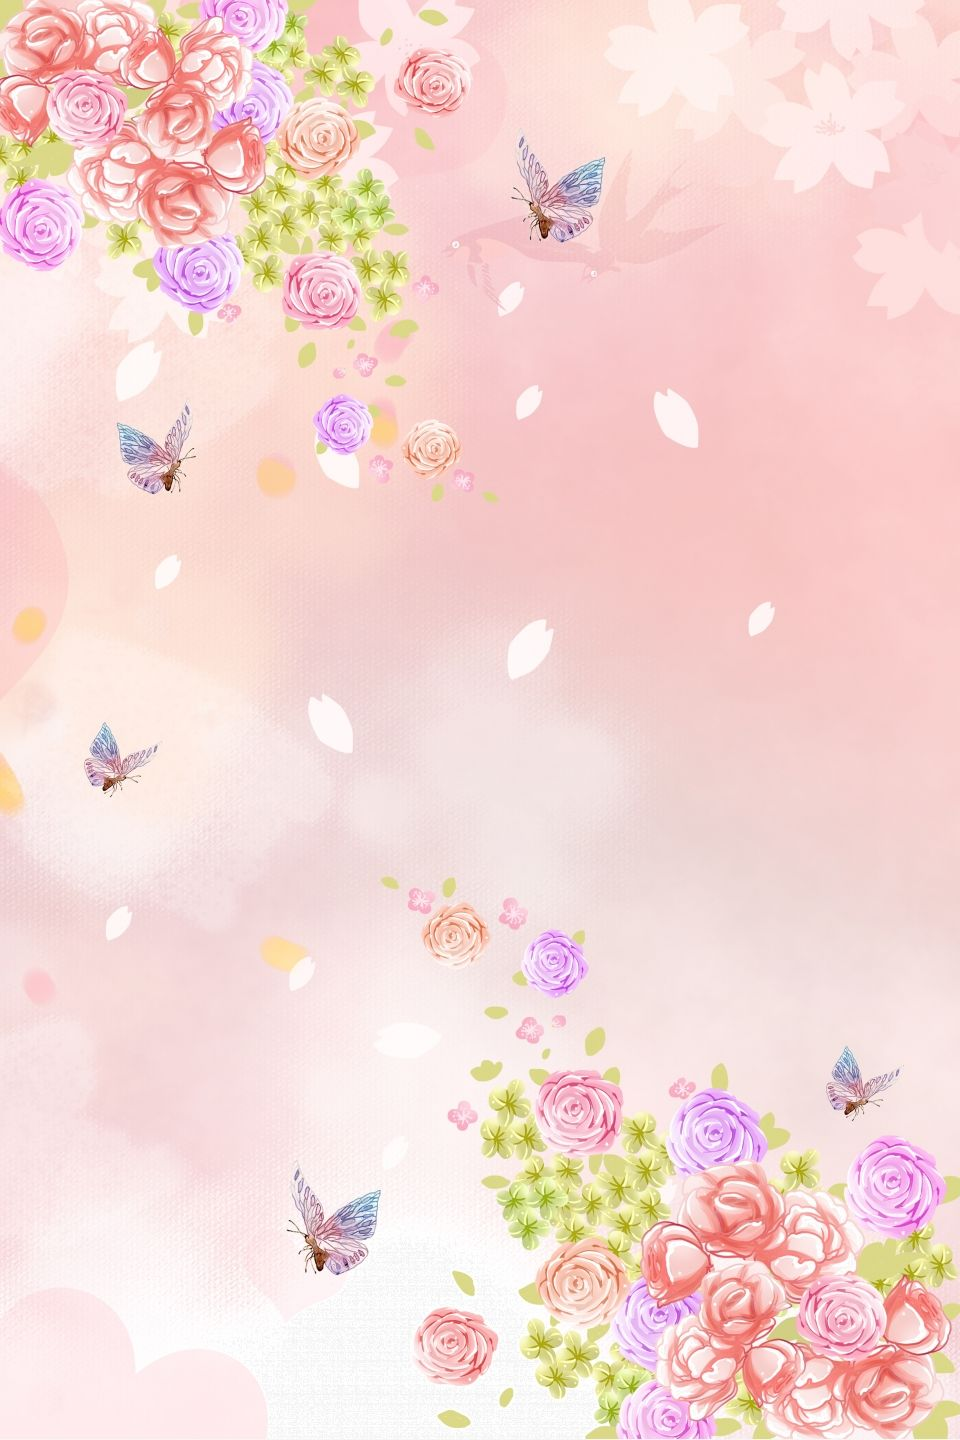 Butterfly Love Flower Poster Background Material Flower Background Images Flower Backgrounds Beautiful Posters